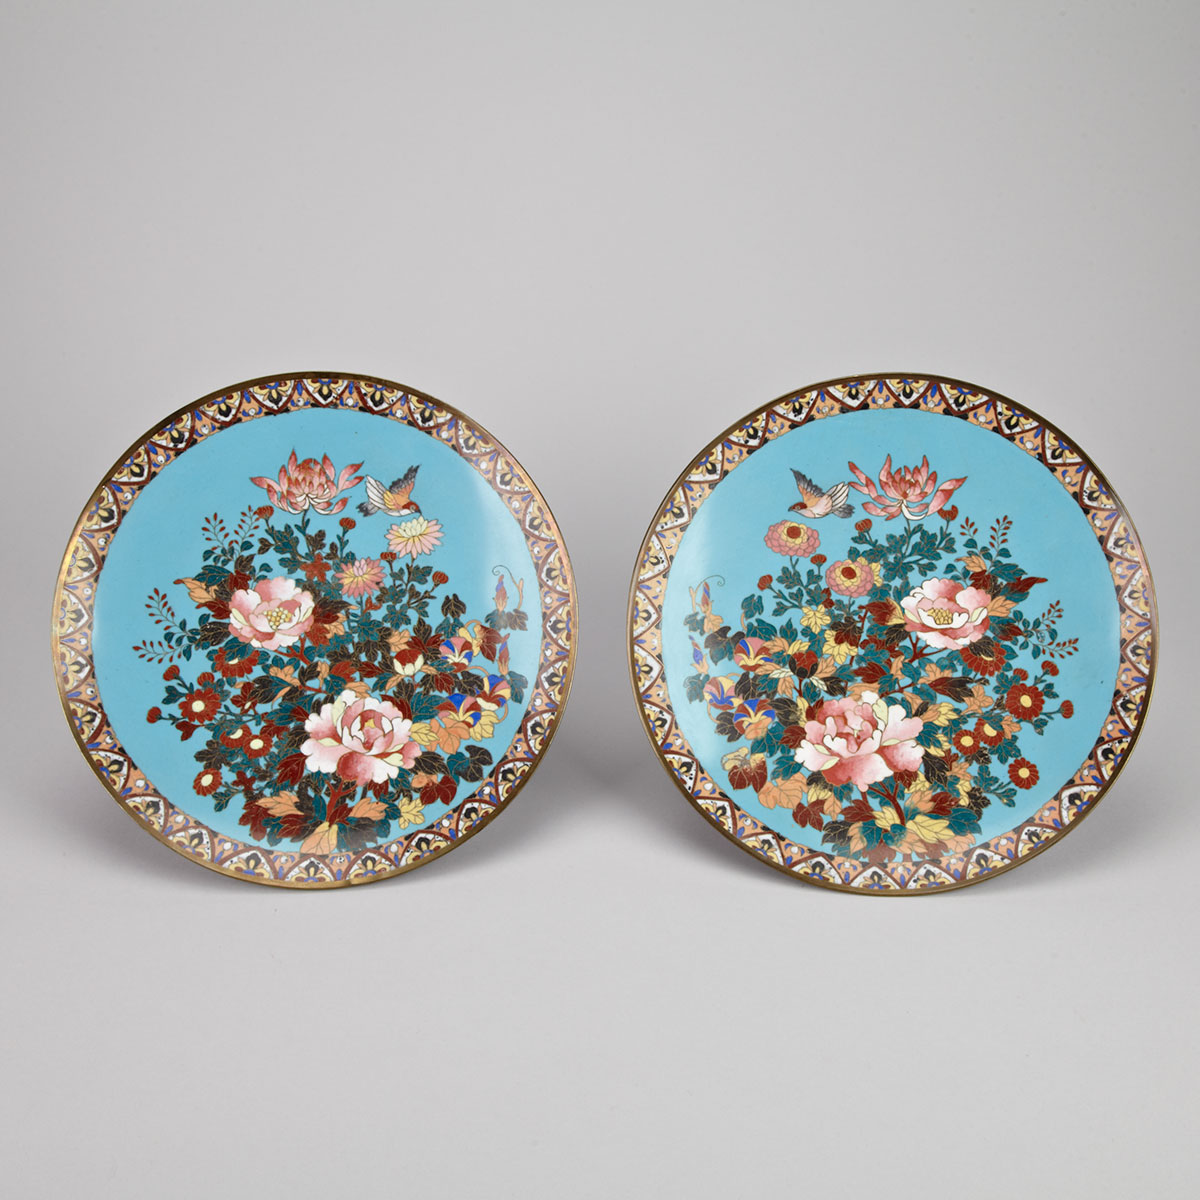 Pair of Cloisonné Enamel Fauna and Floral Plates, Early 20th Century